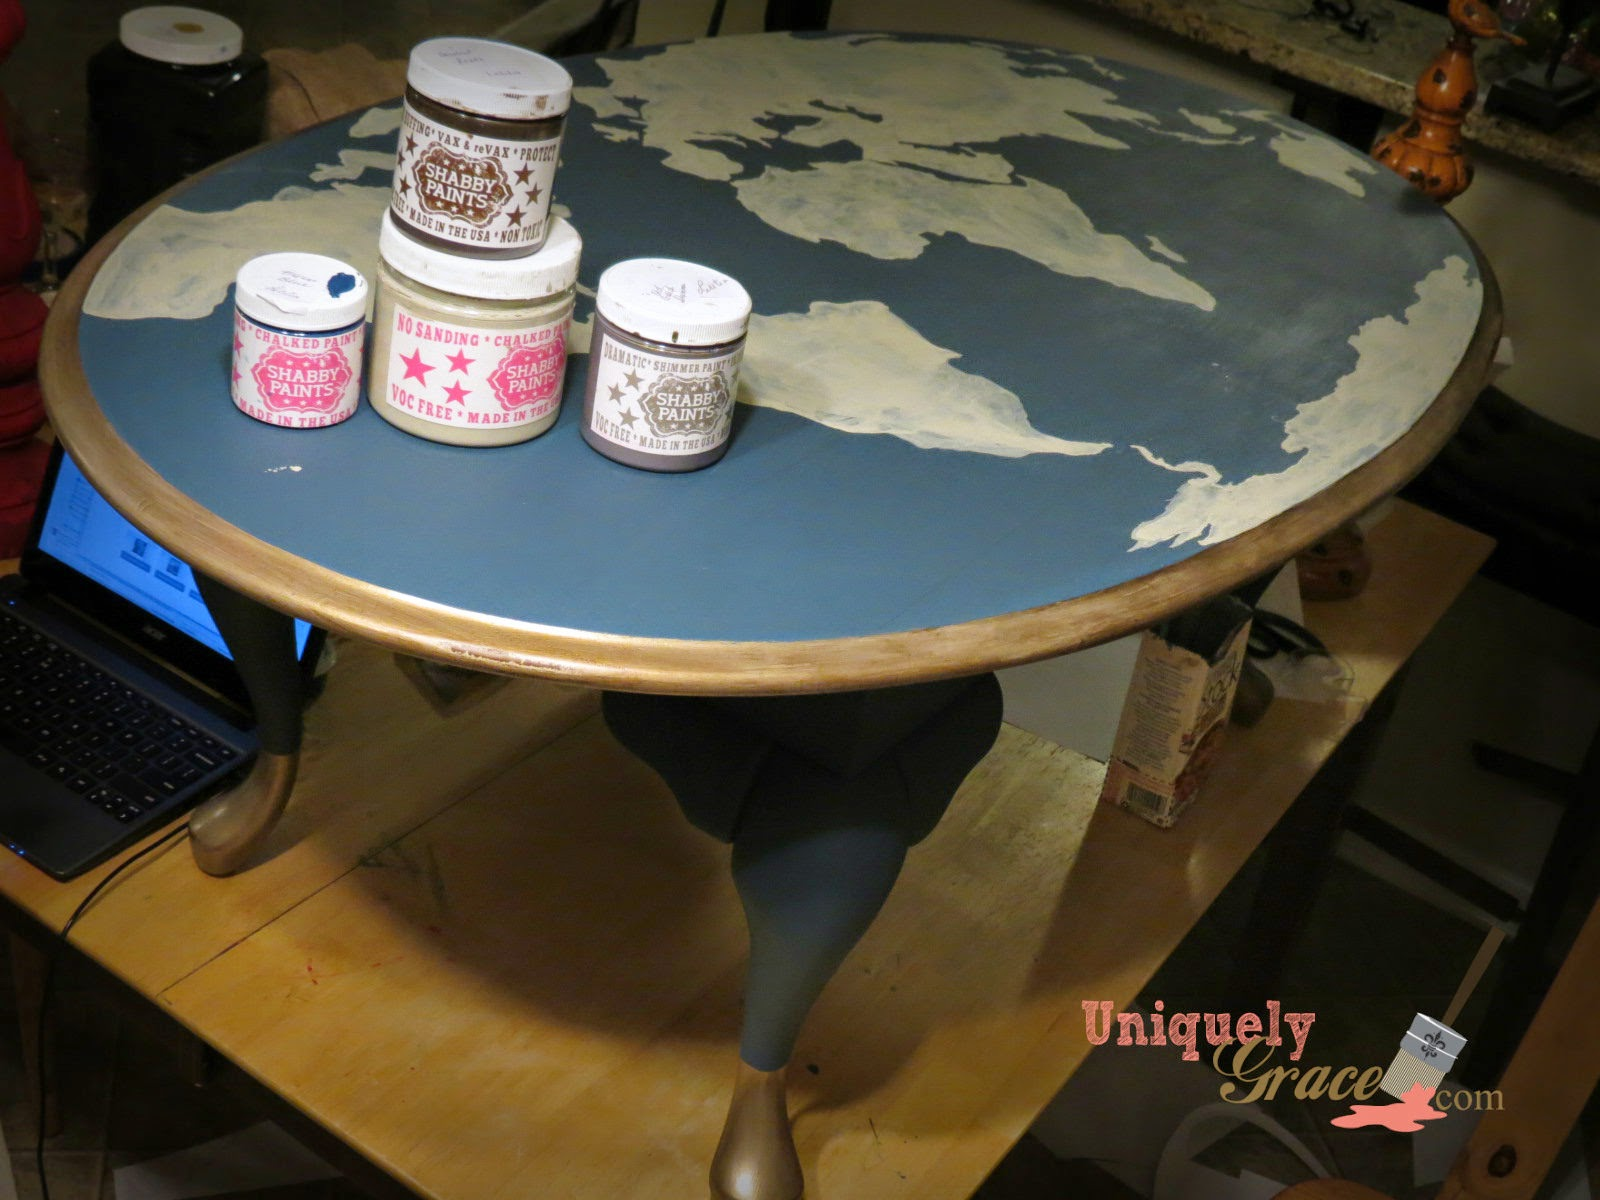 EDIT/UPDATE: This Project Won A Prize From Shabby Paints As A Monthly  Favorite Project. Thank You Shabby Paints!!!! I Could Not Have Created This  Without ...